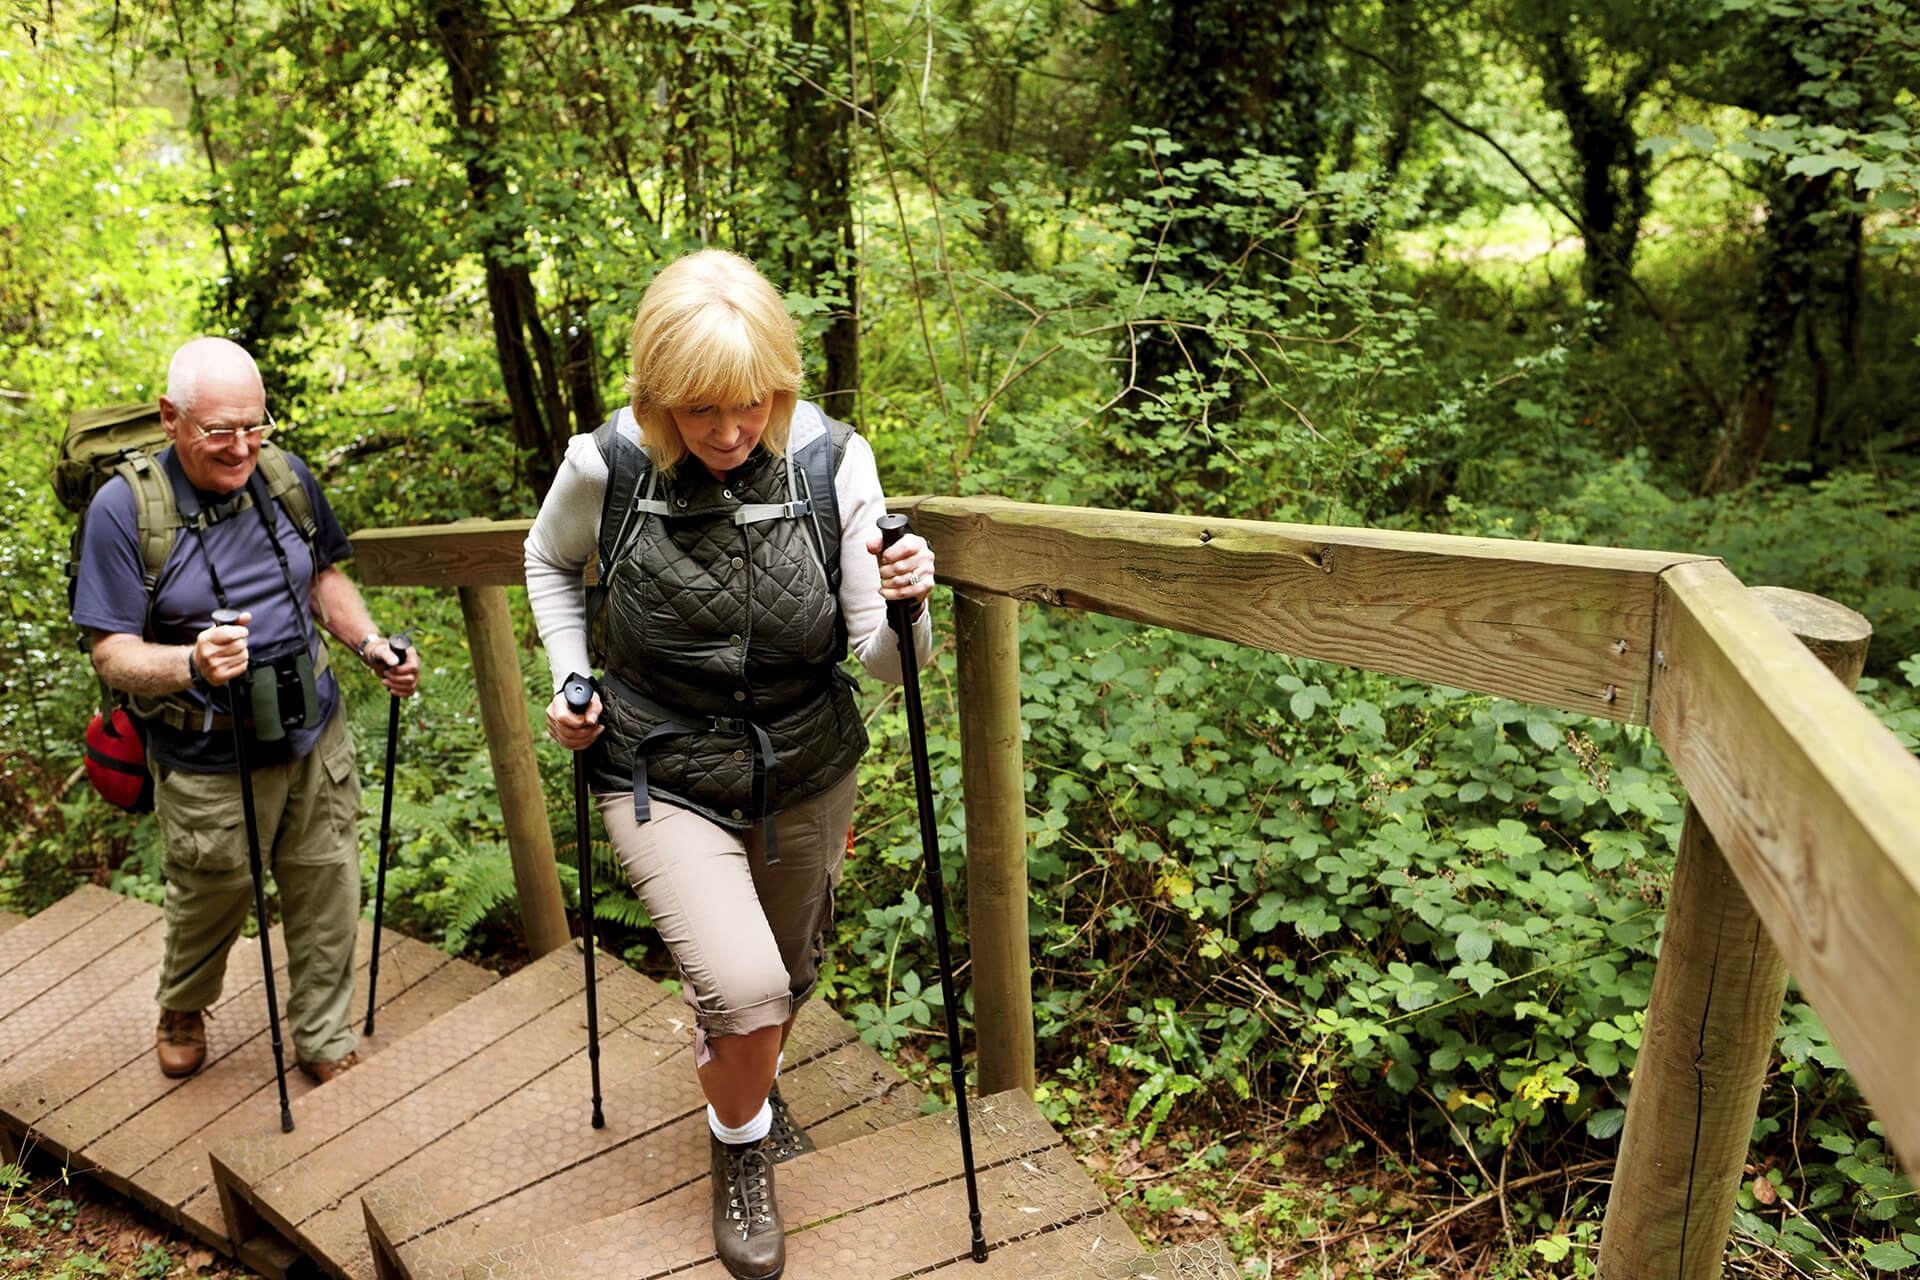 Two elderly hiking